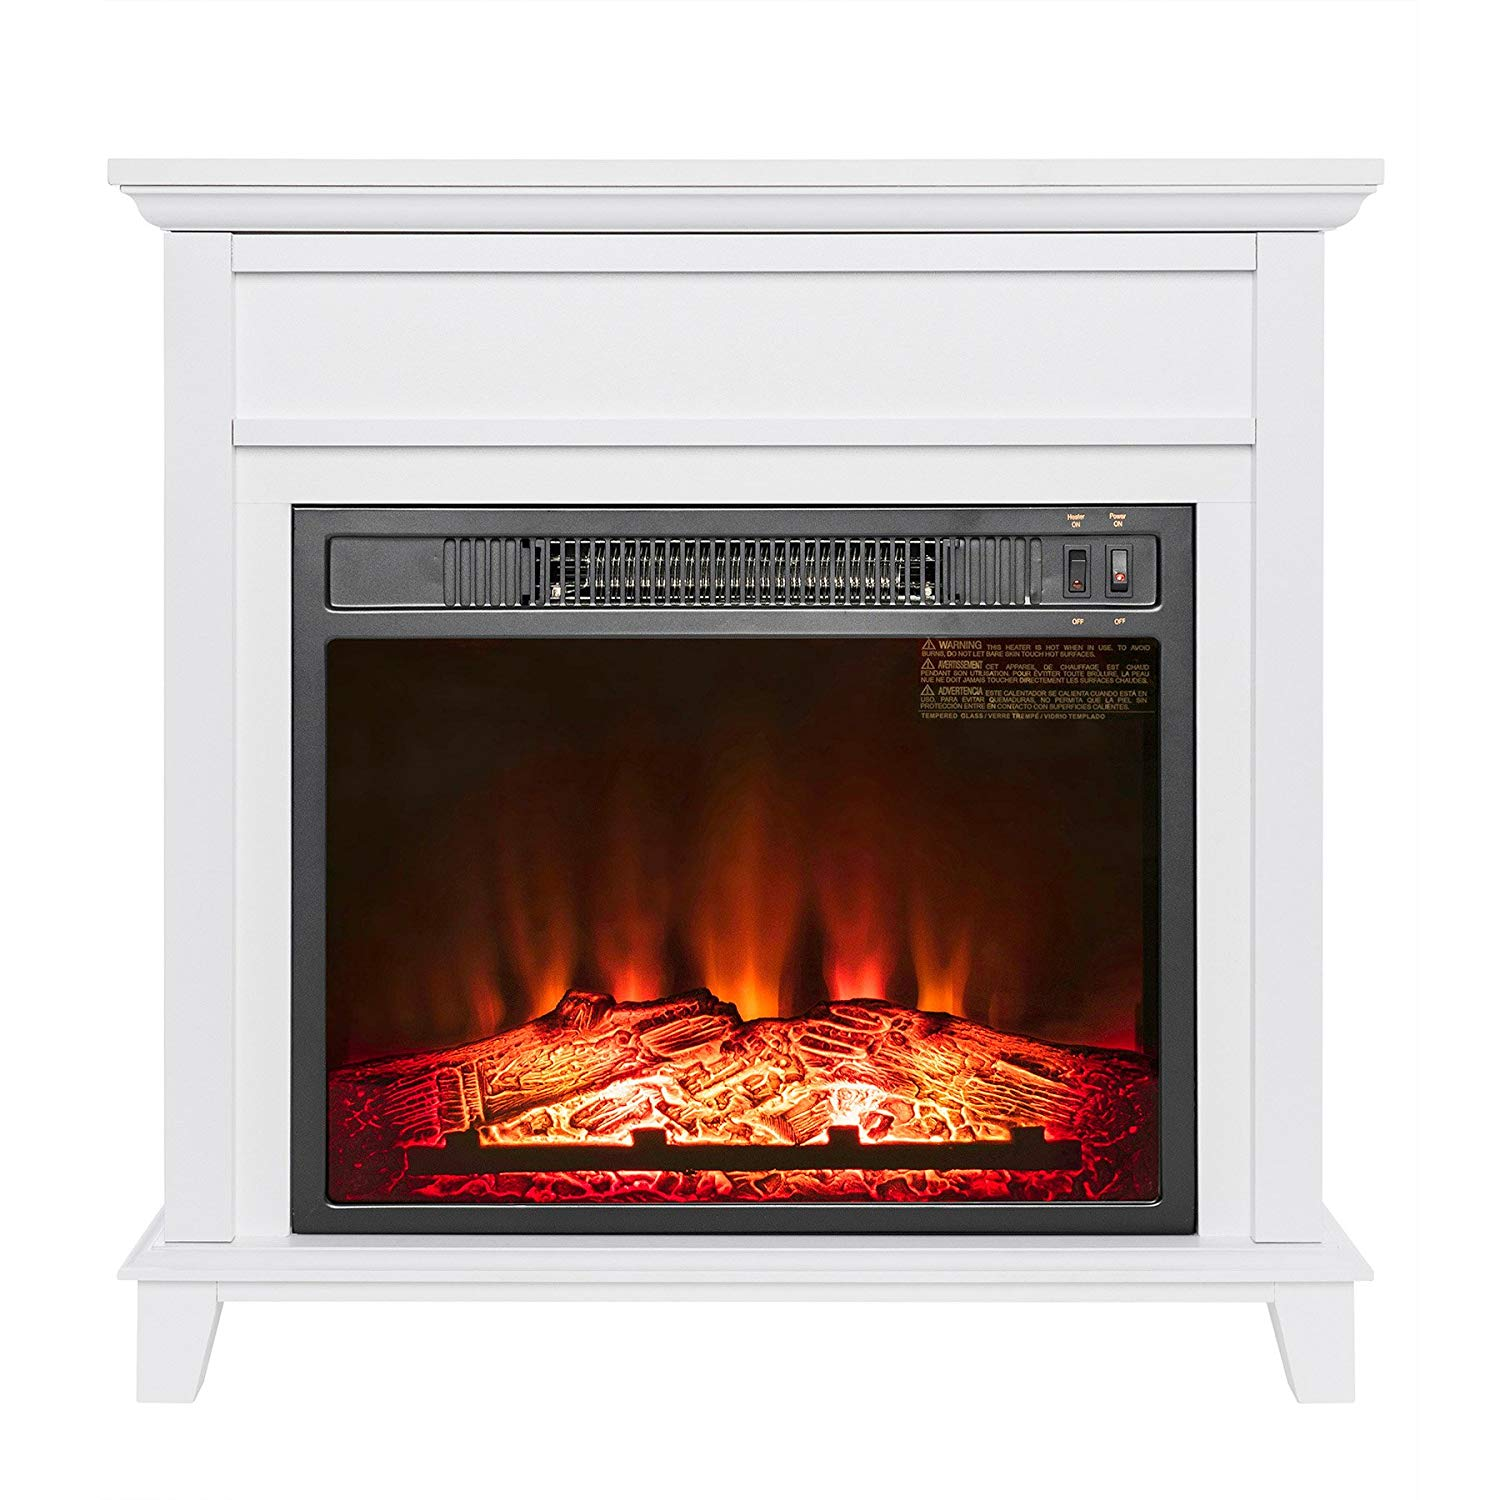 hygge decor electric fireplace